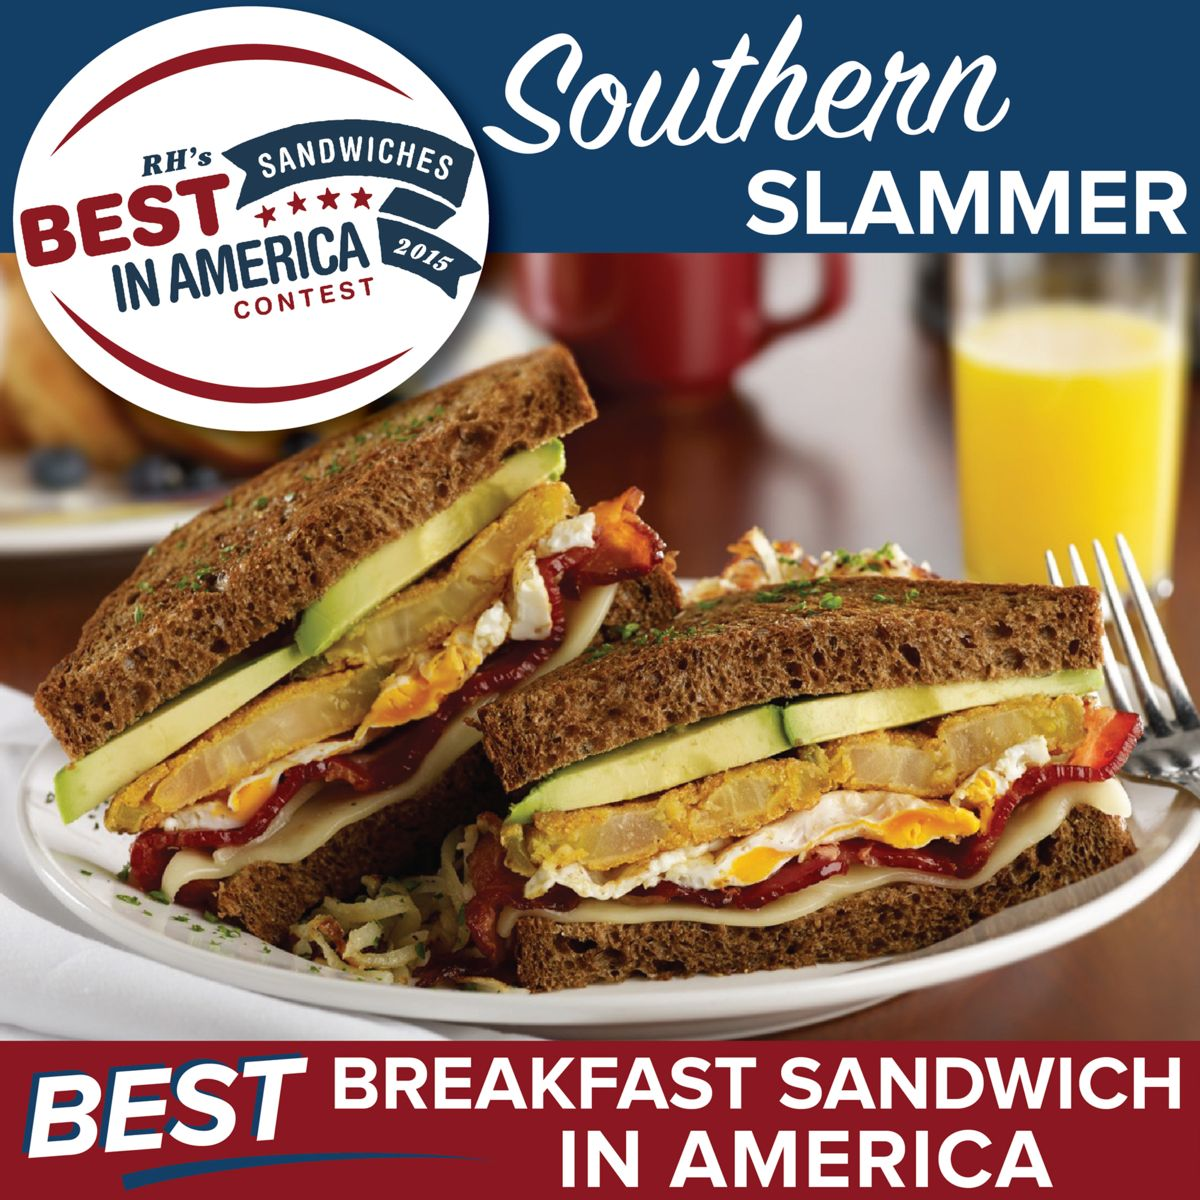 ... sandwich is a fresh Southern spin on the classic breakfast sandwich